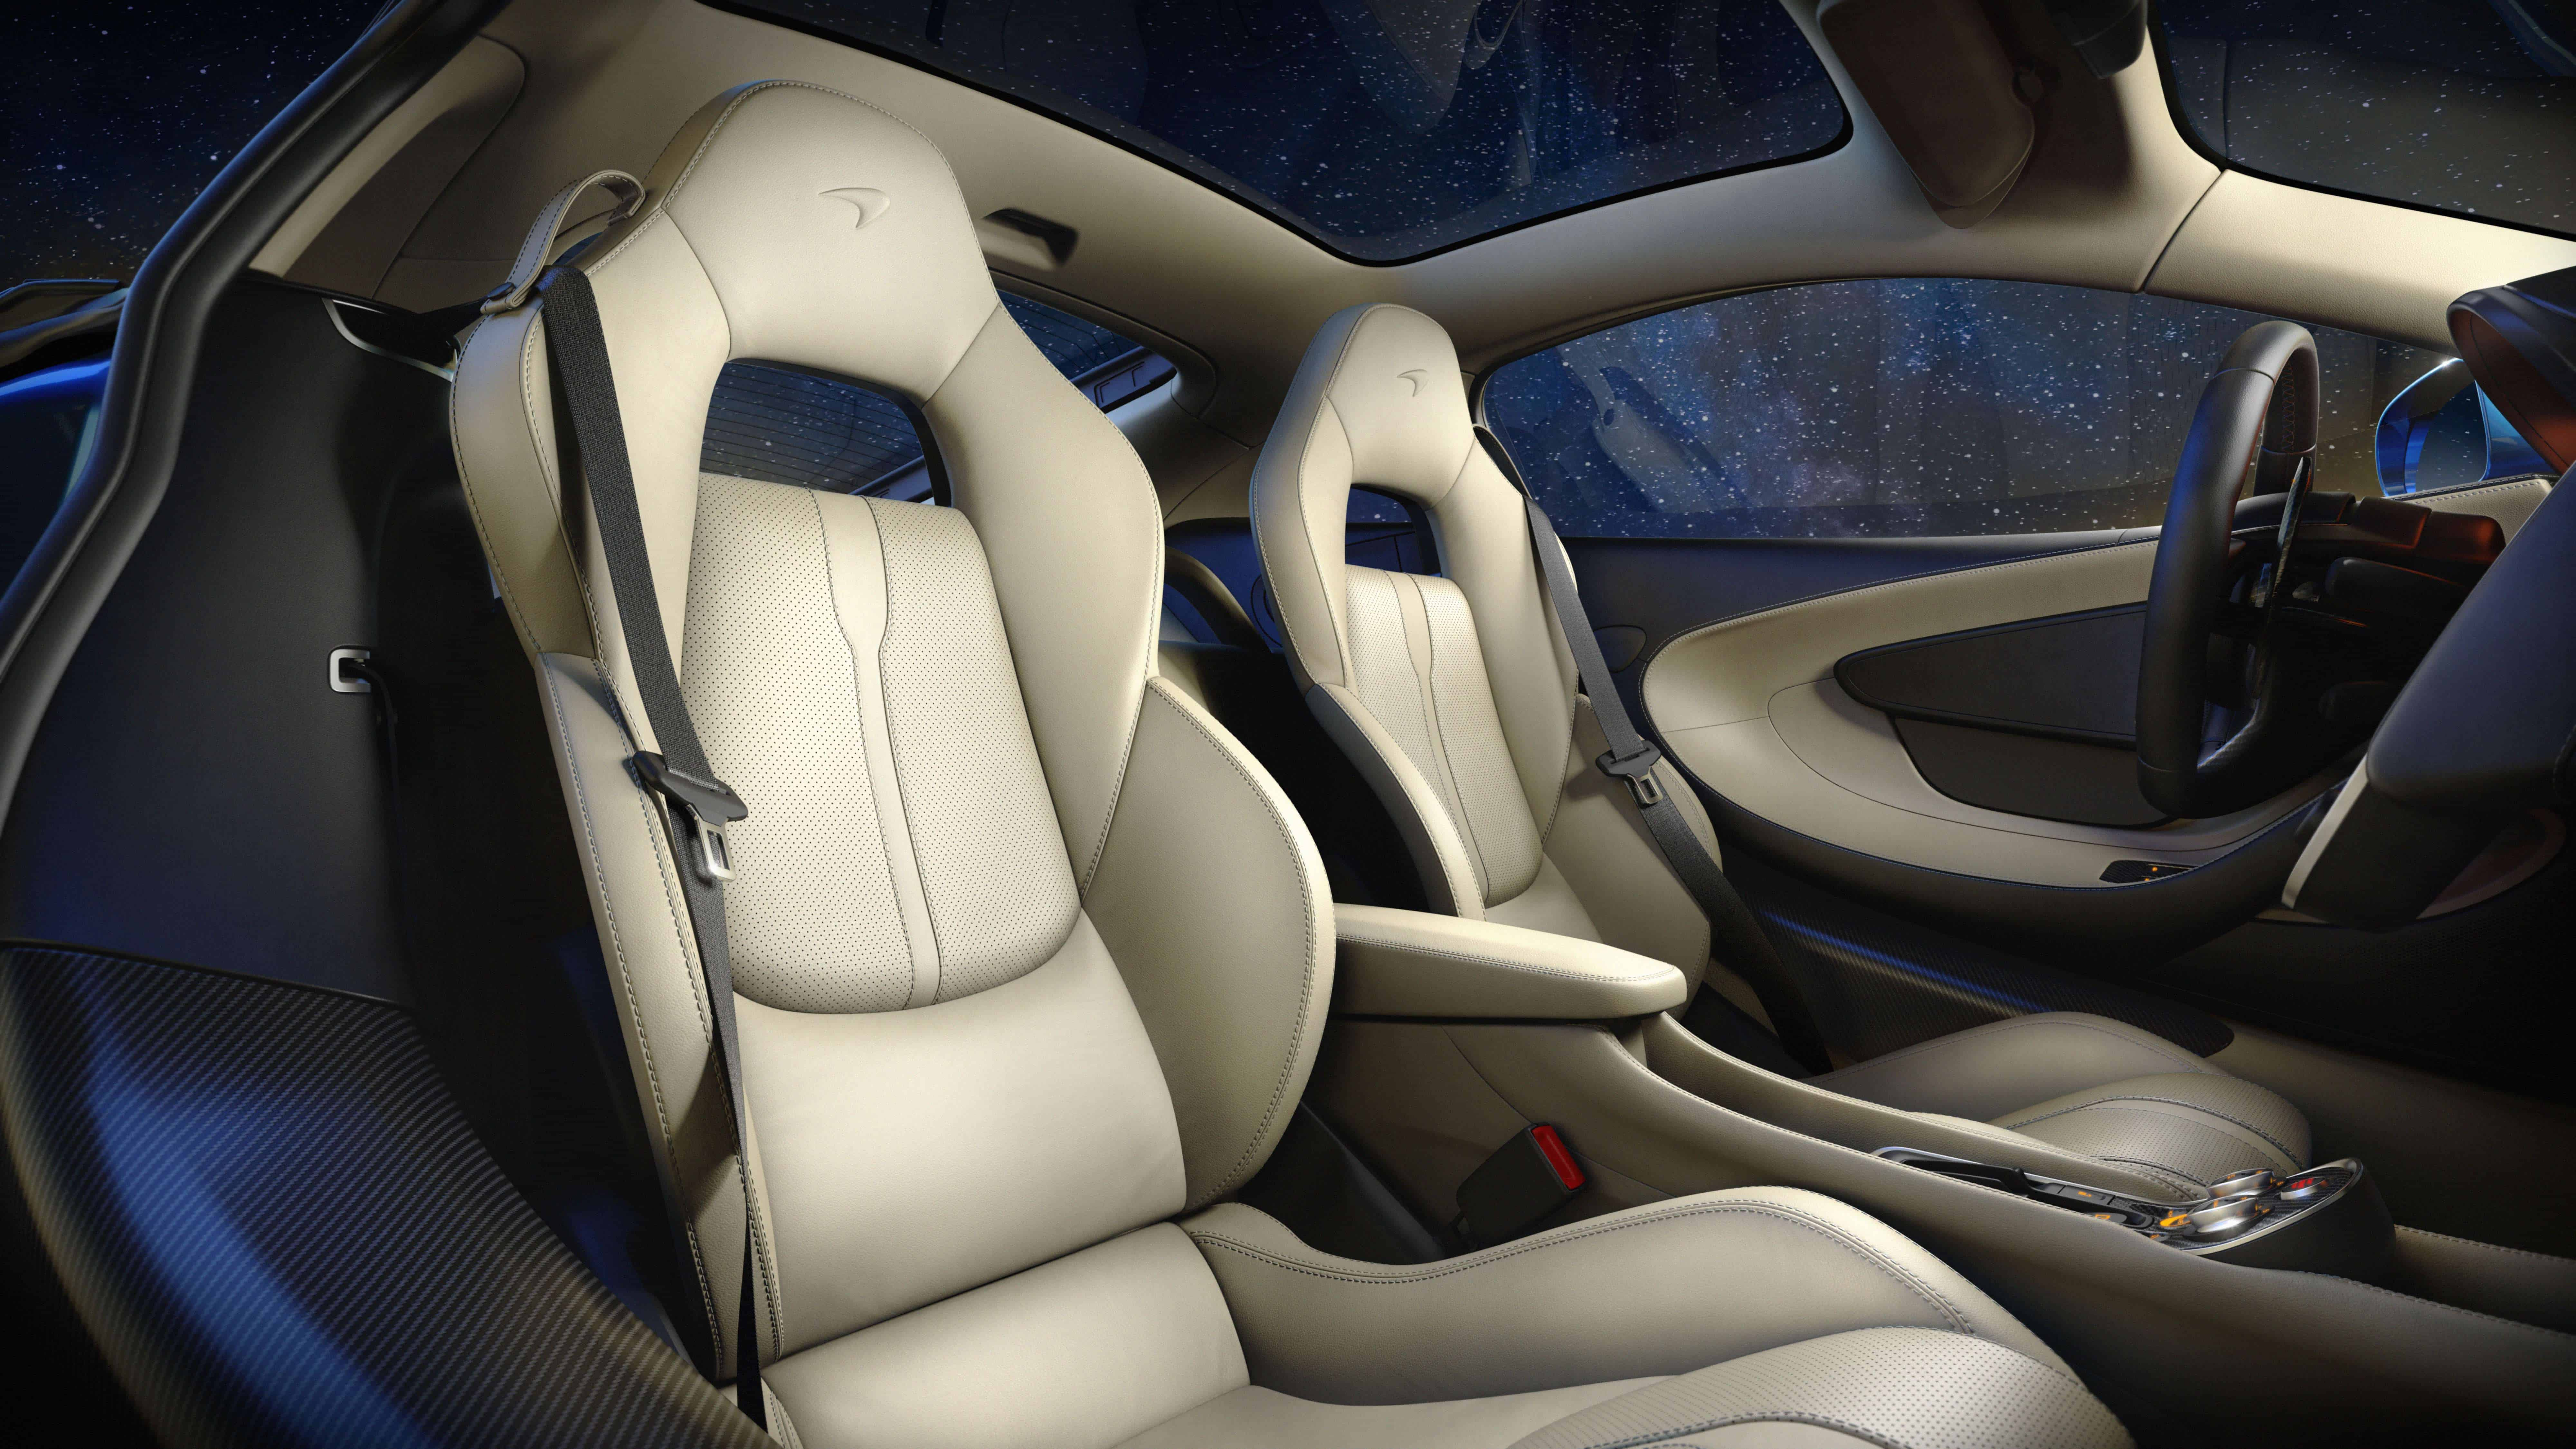 Leather-lined comfort in the GT cabin, and even a glove box